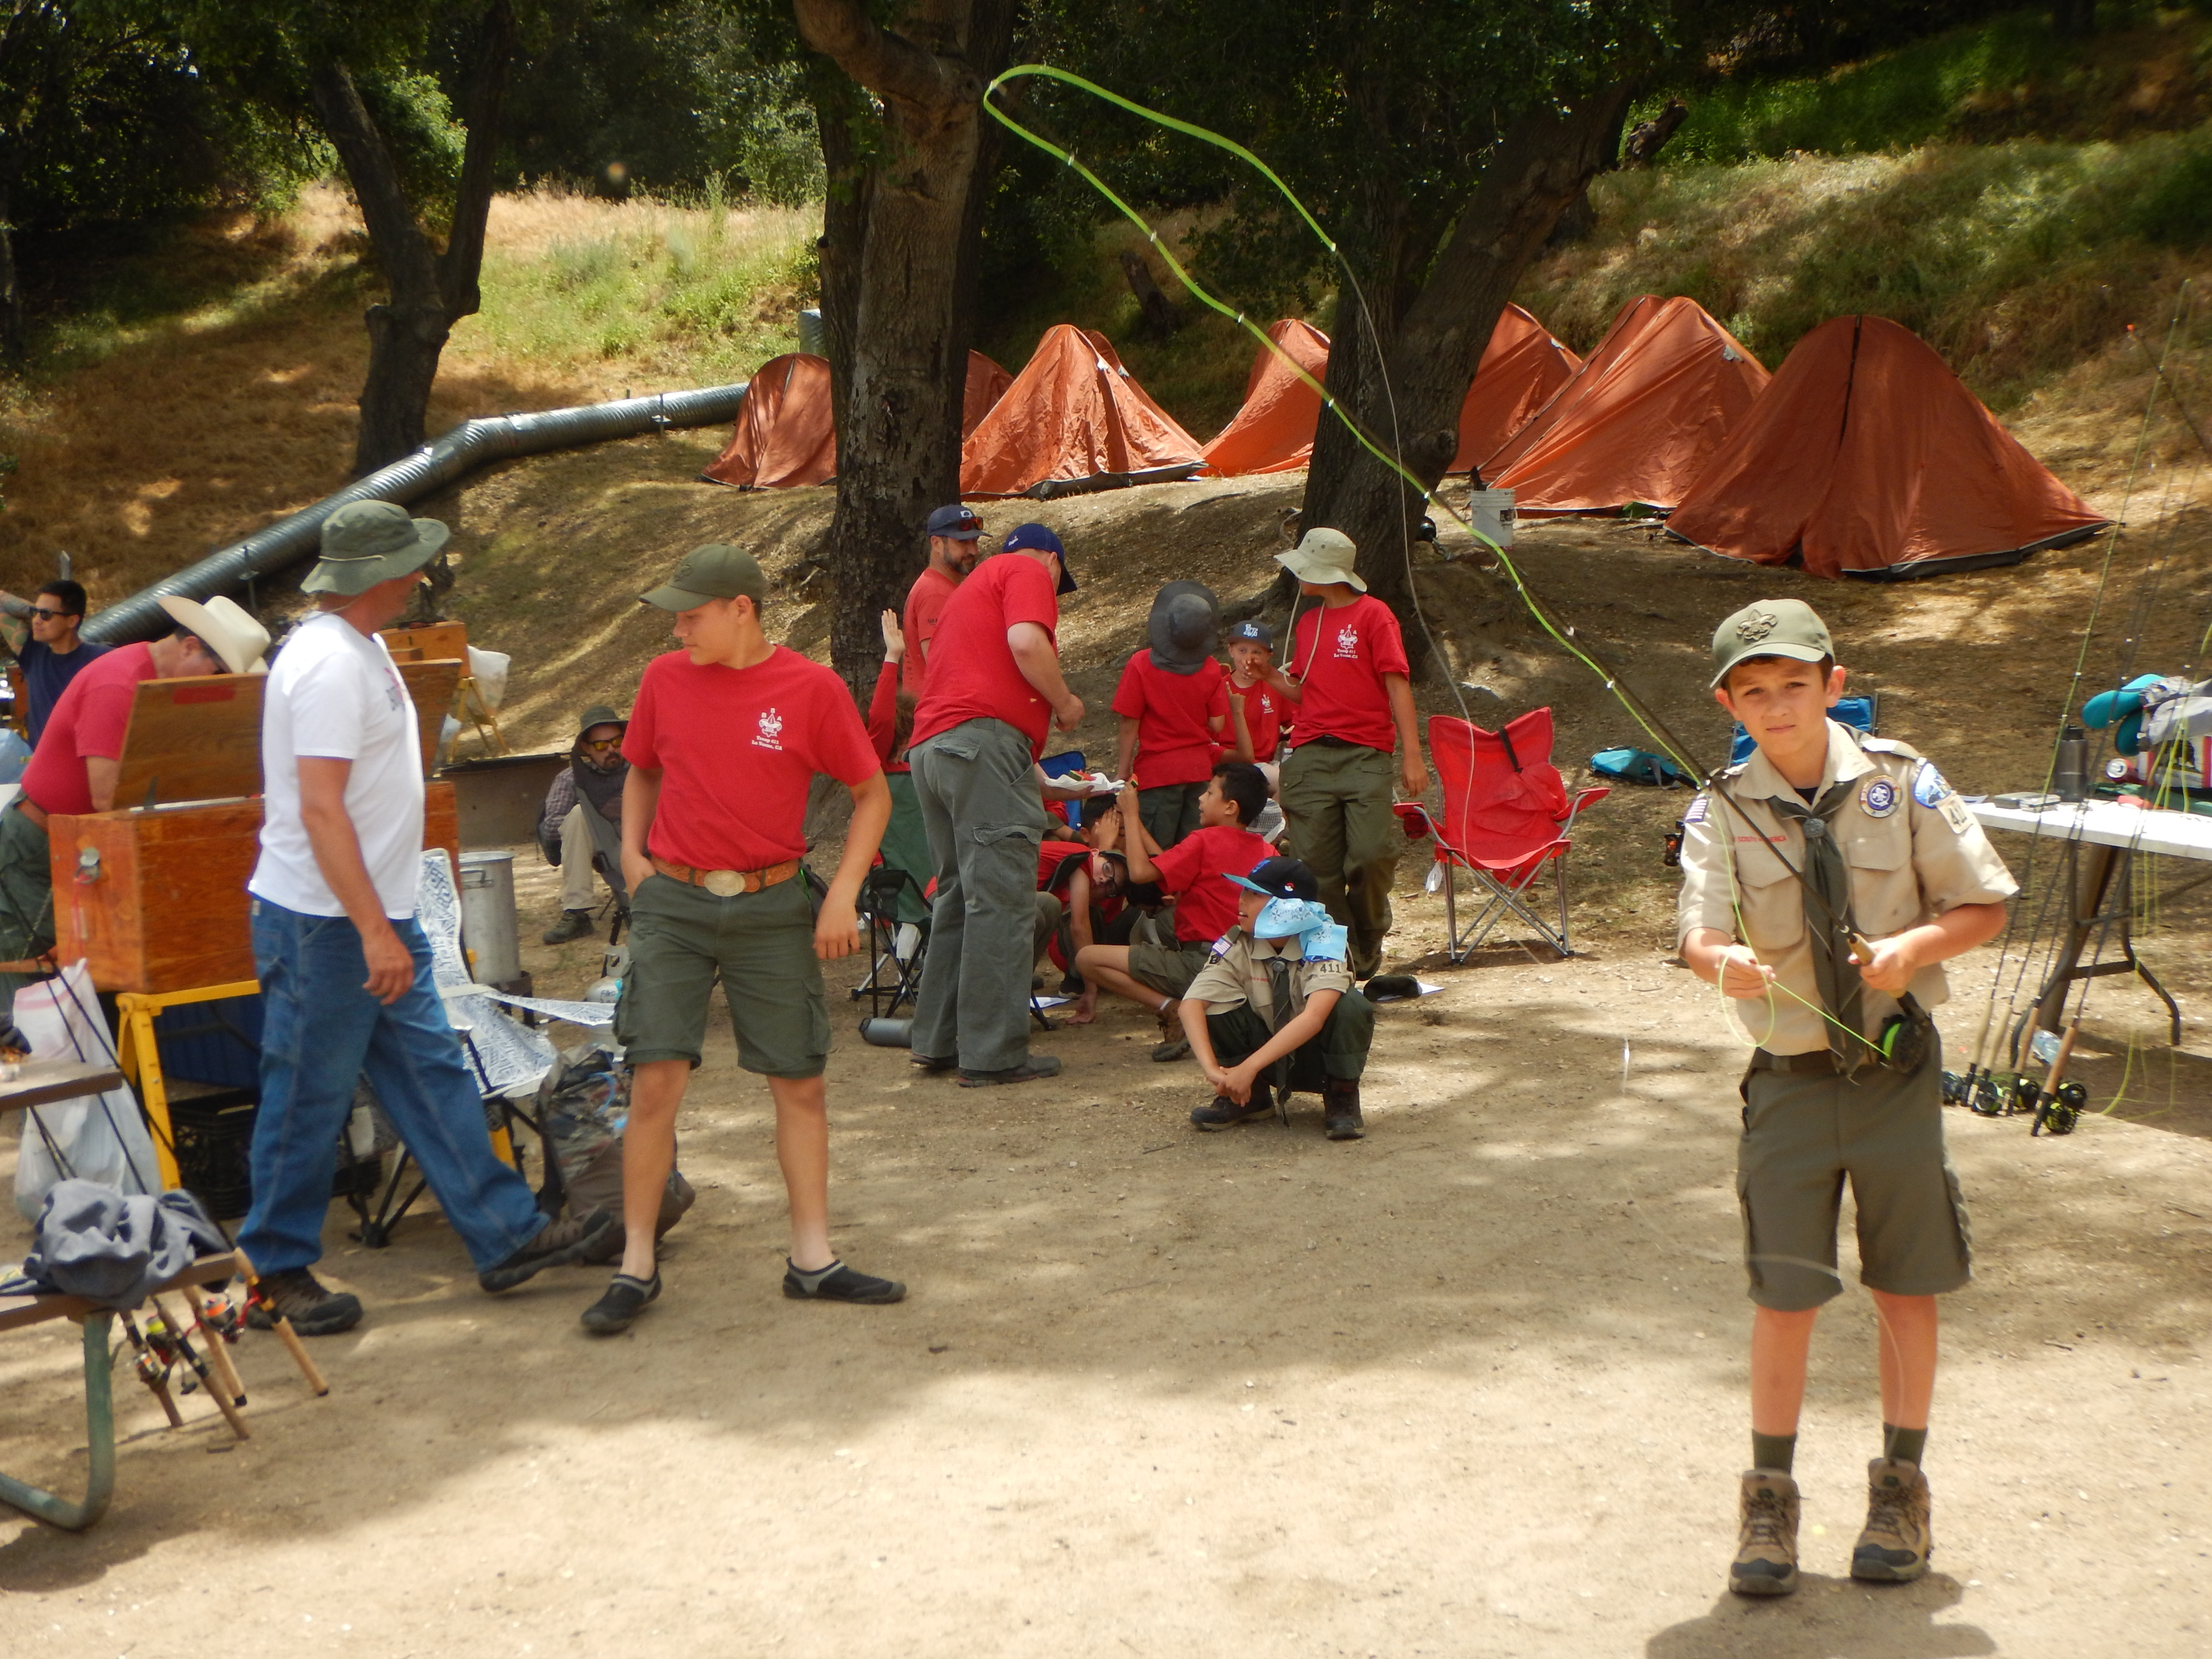 South Coast - Fly-Fishing 101 workshop with Boy Scout Troops